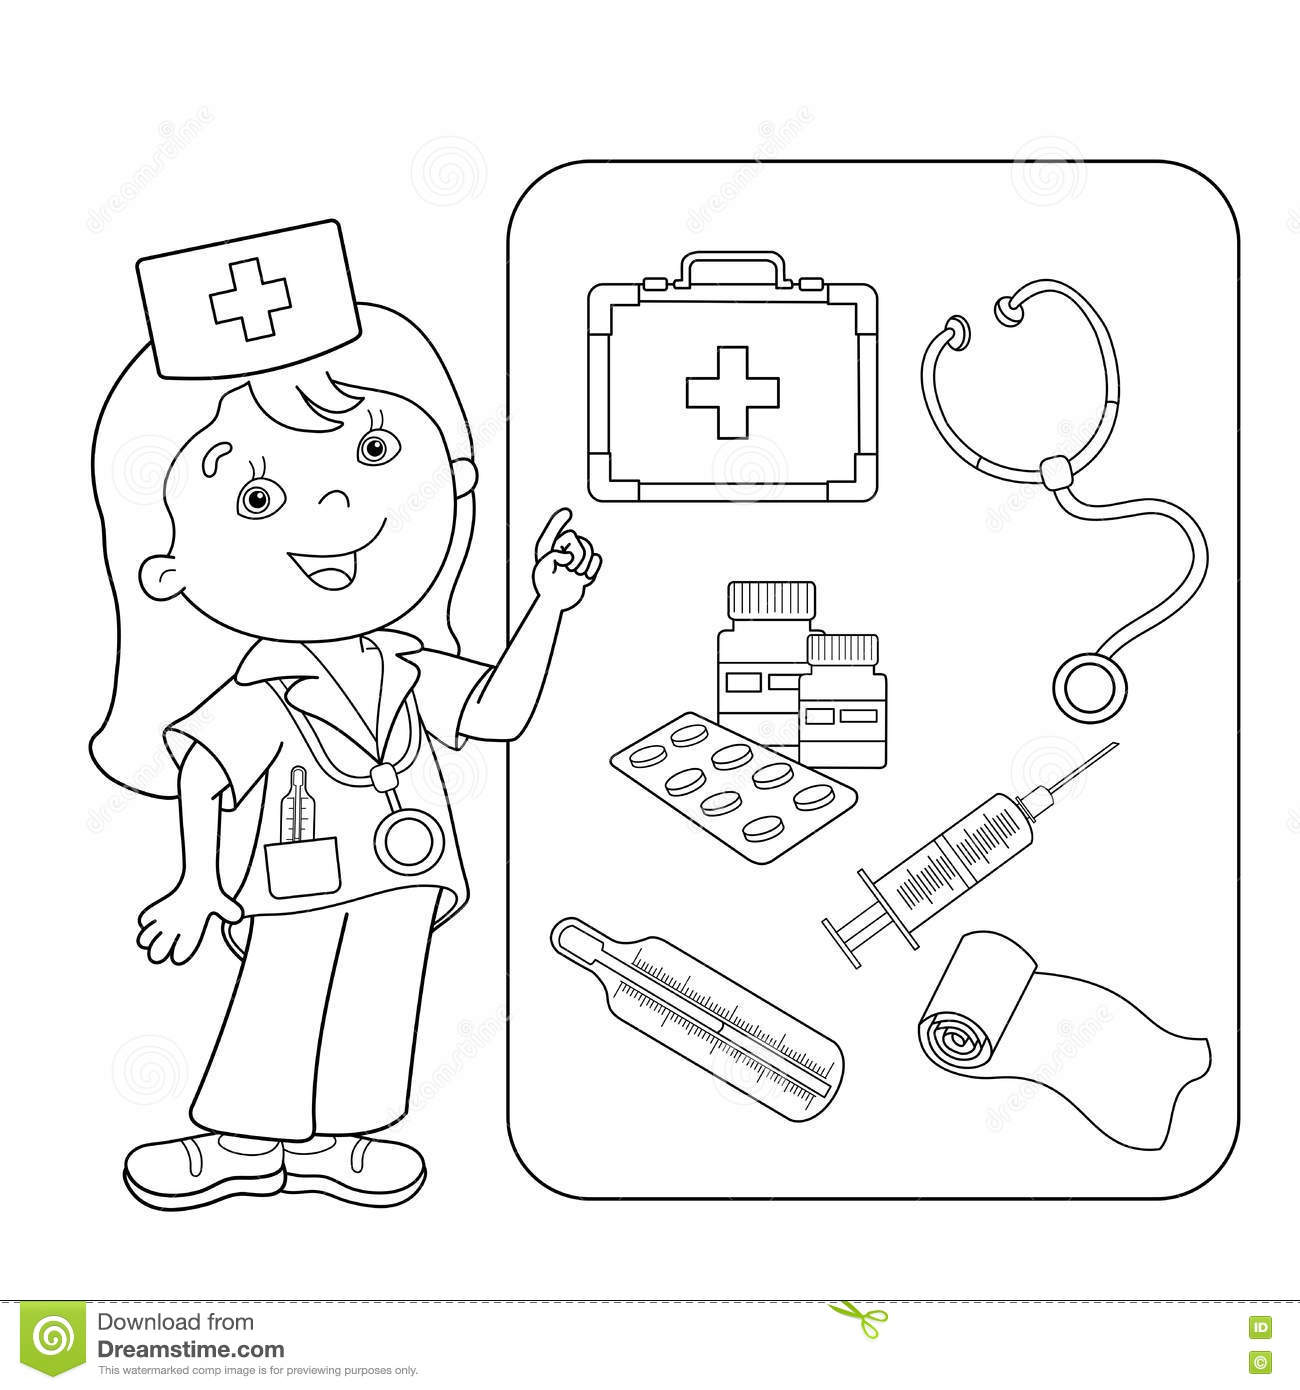 Free Worksheet First Aid Worksheets For Kids first aid kit coloring pages worksheets and page outline of cartoon doctor with stock